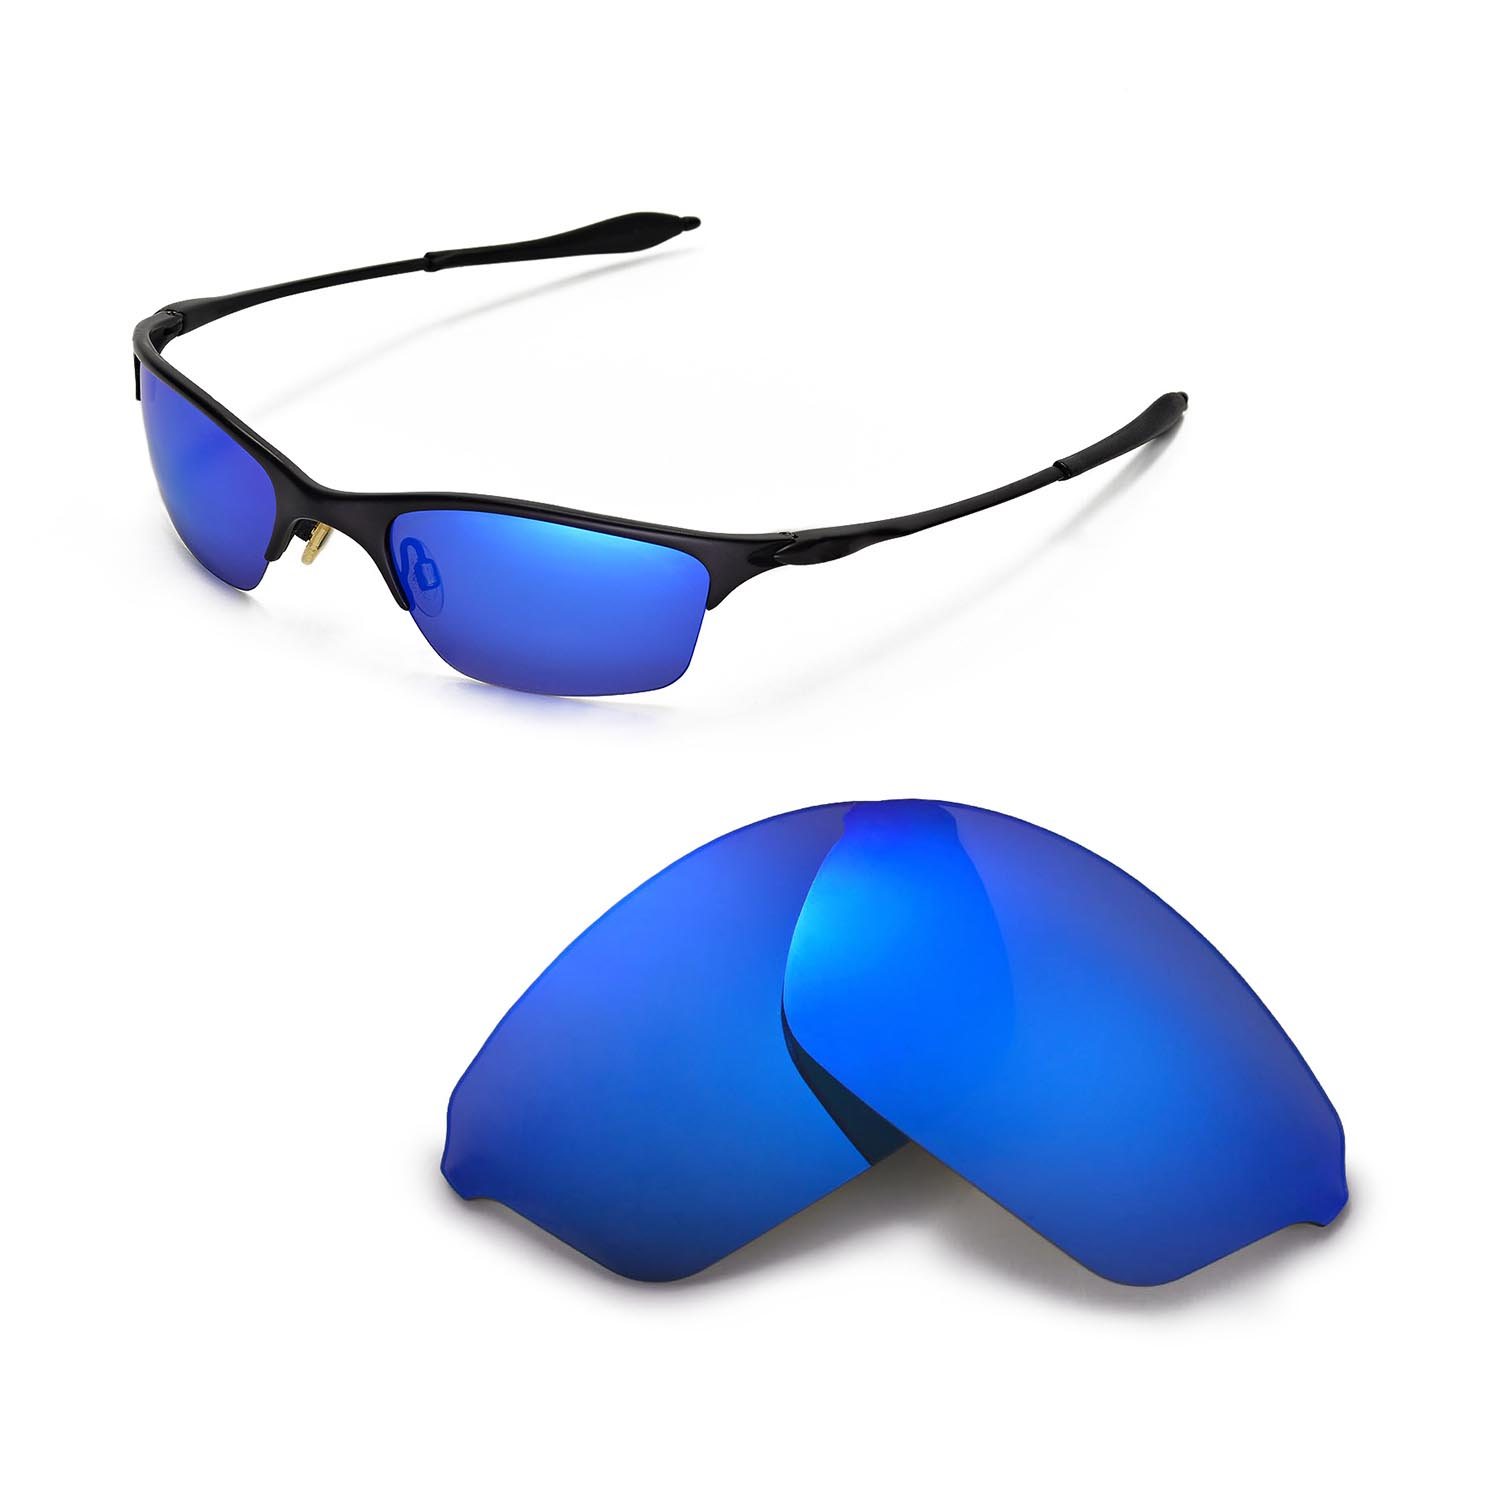 5468089b84 Details about New WL Polarized Ice Blue Replacement Lenses For Oakley Half  Wire XL Sunglasses